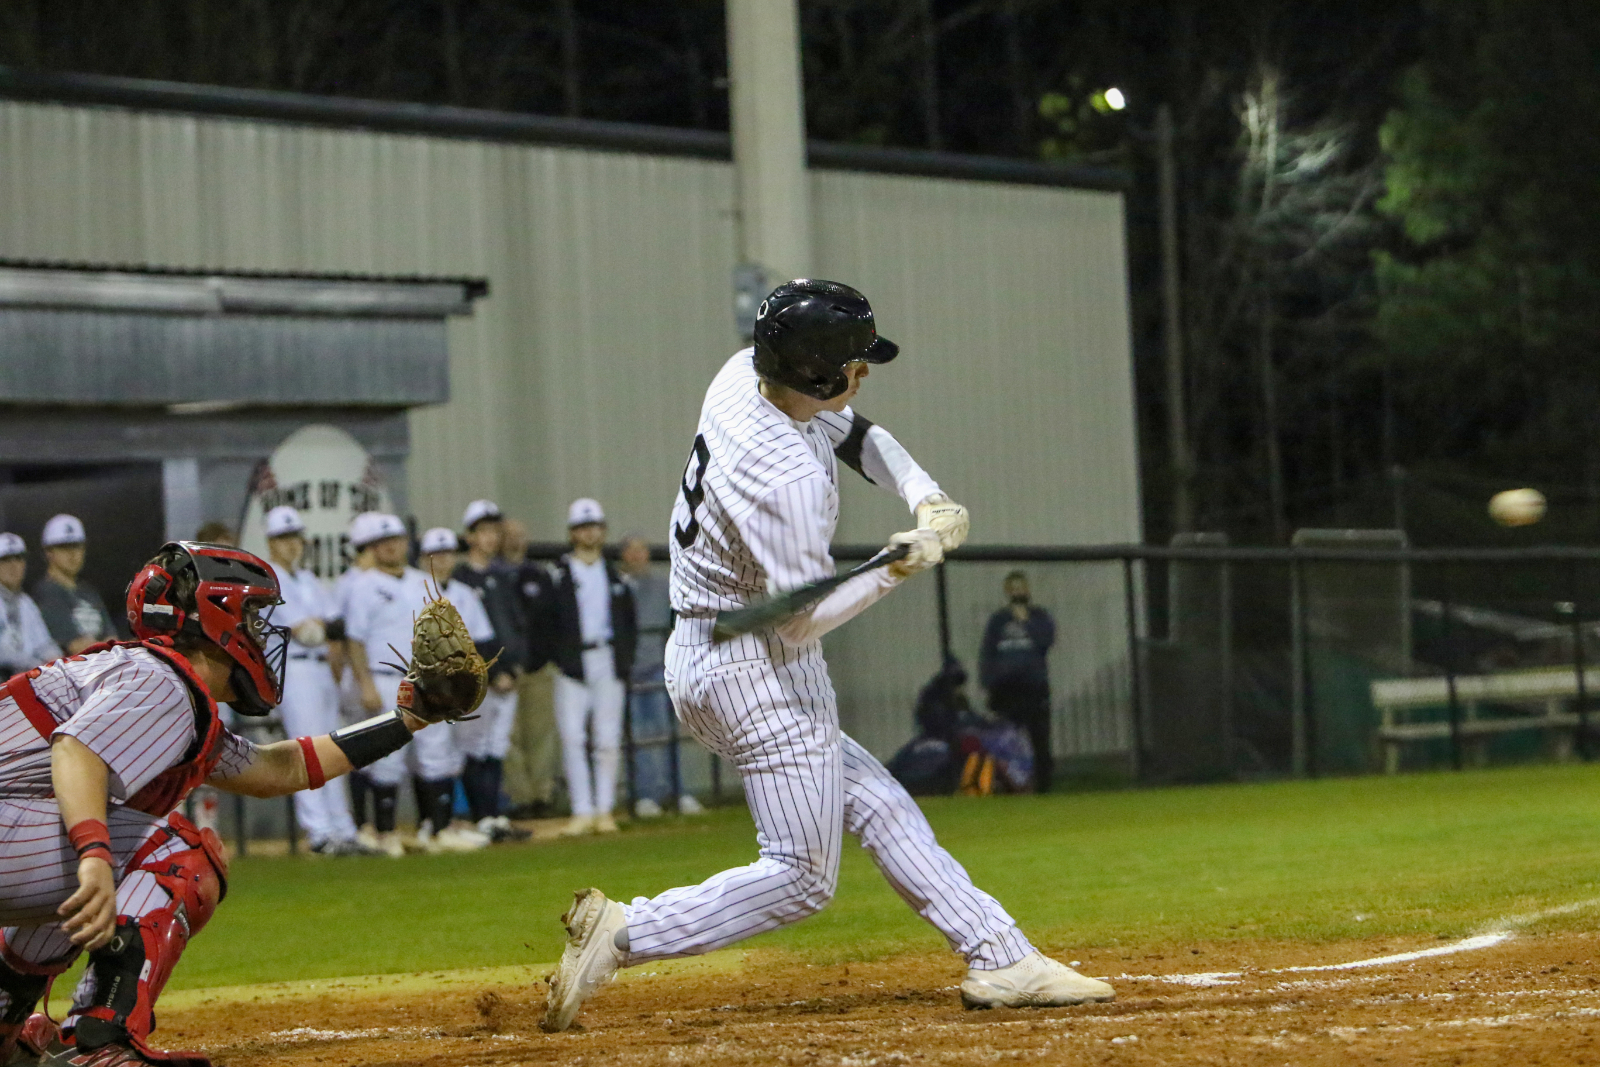 SSHS vs. Opelika Senior Night 3/10/21